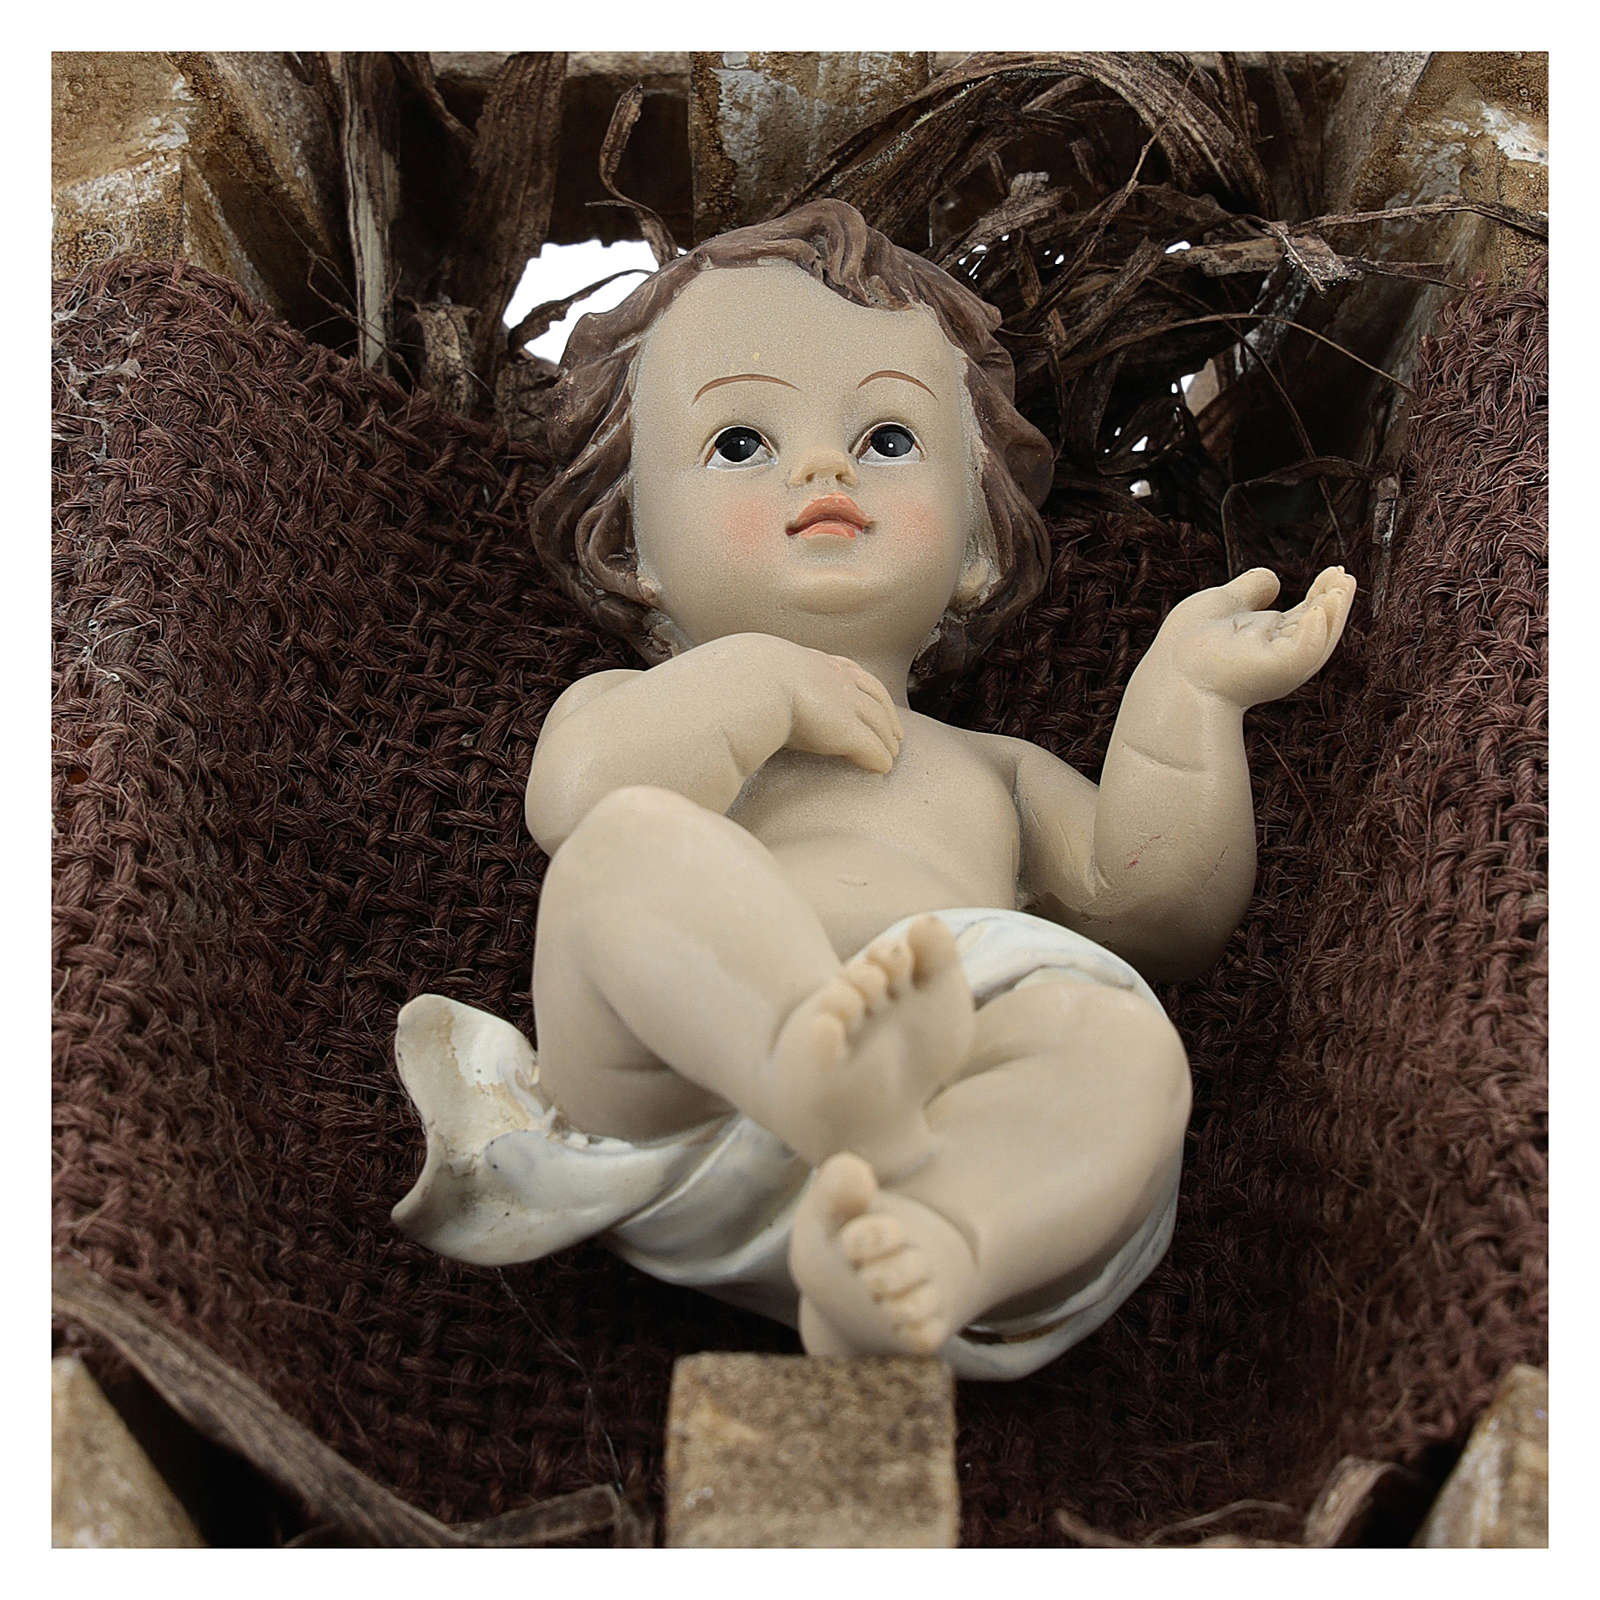 Baby Jesus in resin with wooden cradle 16.5 cm (real height) 3